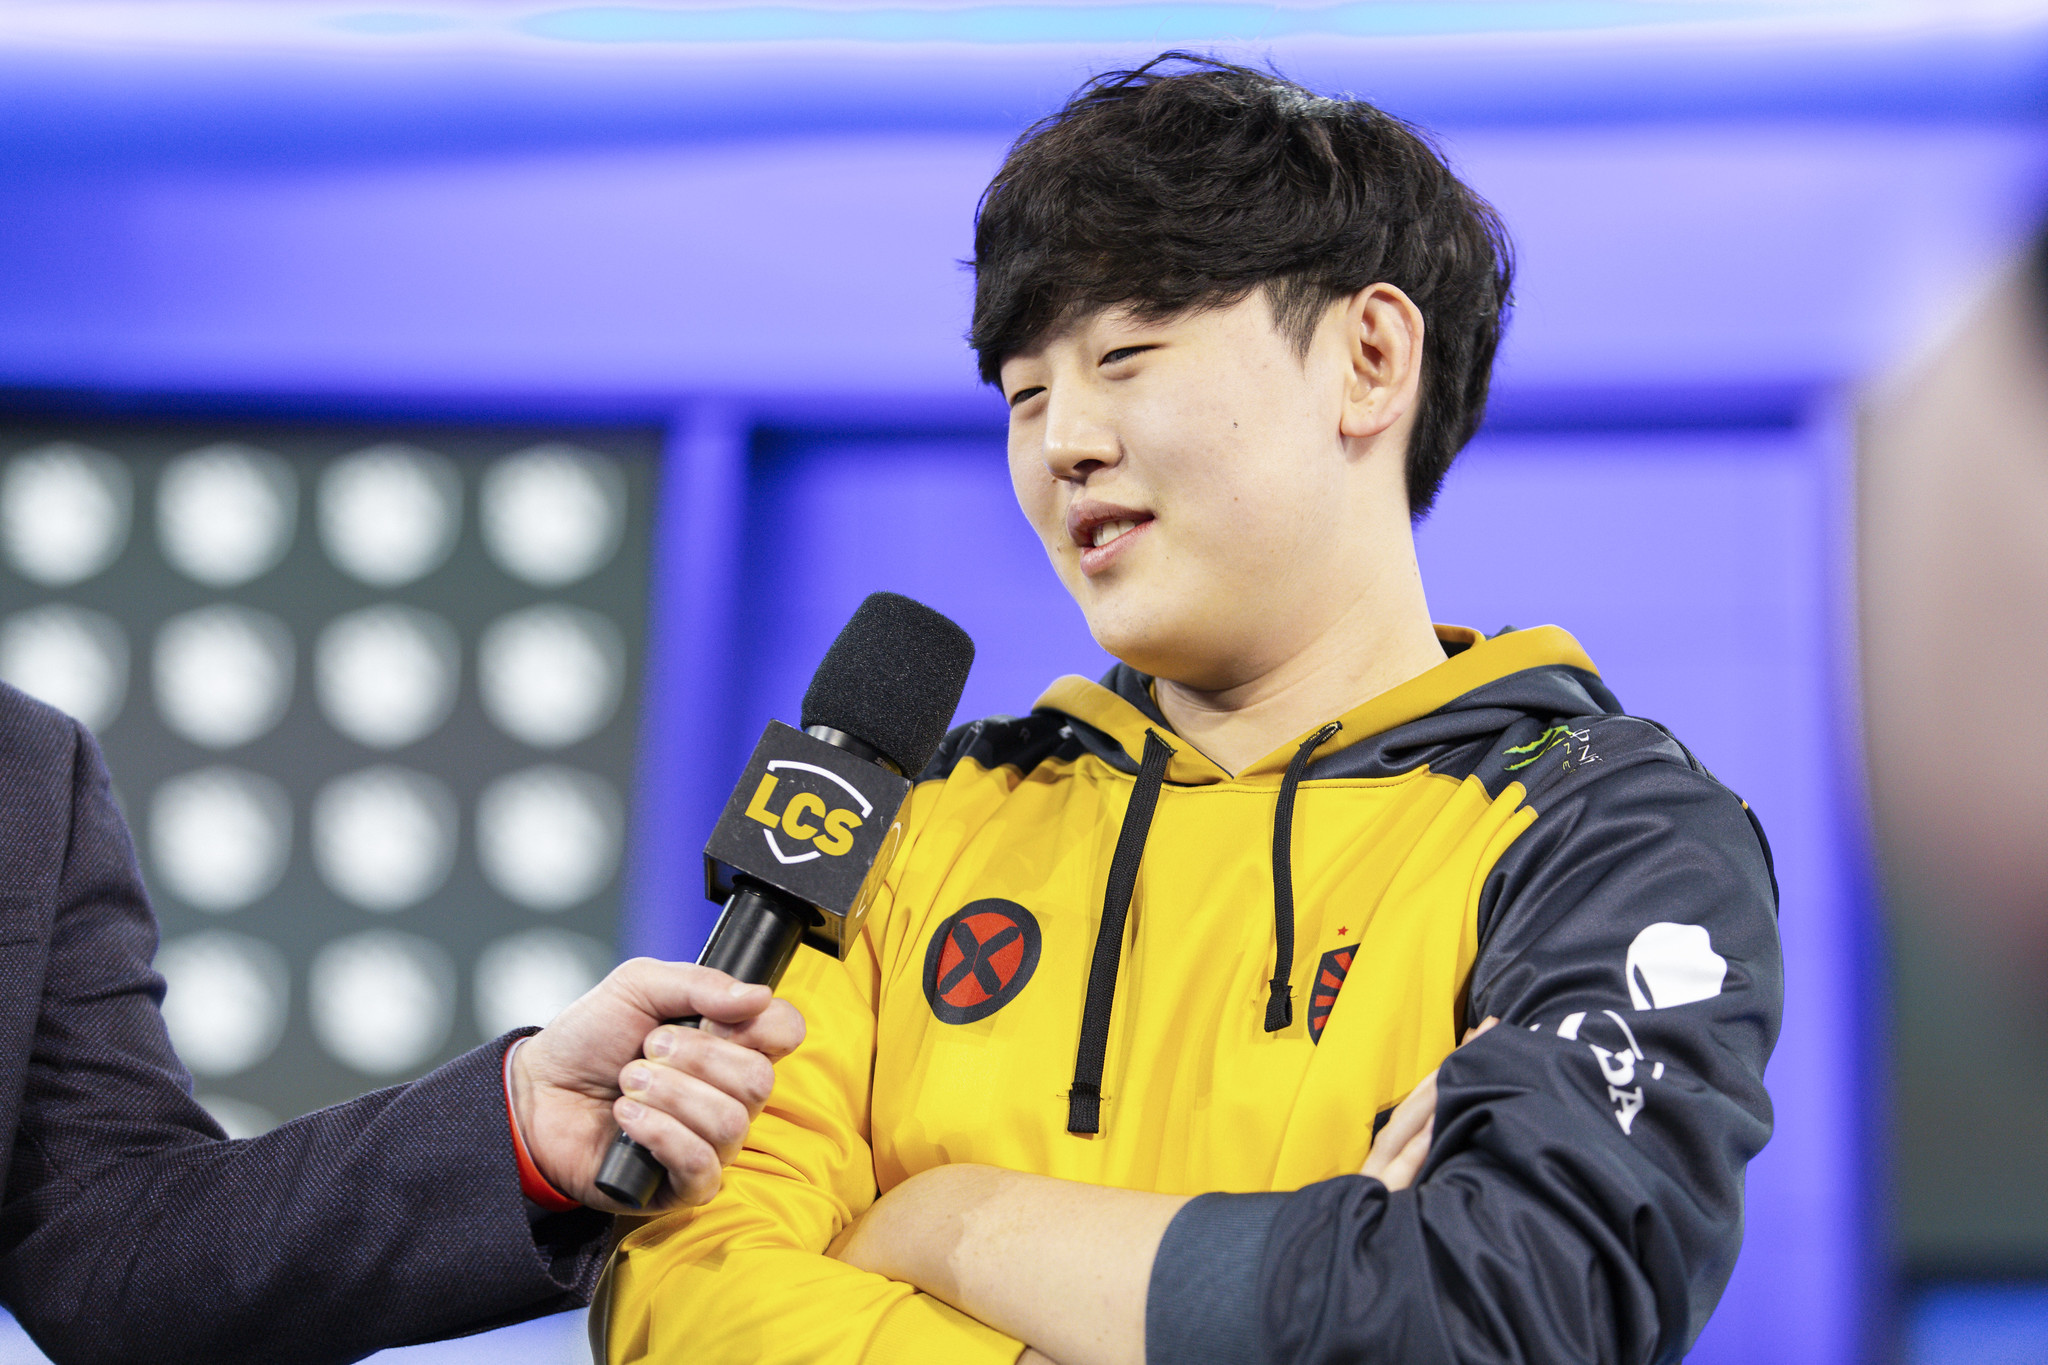 Tactical interviewed on the LCS stage after replacing Doublelift